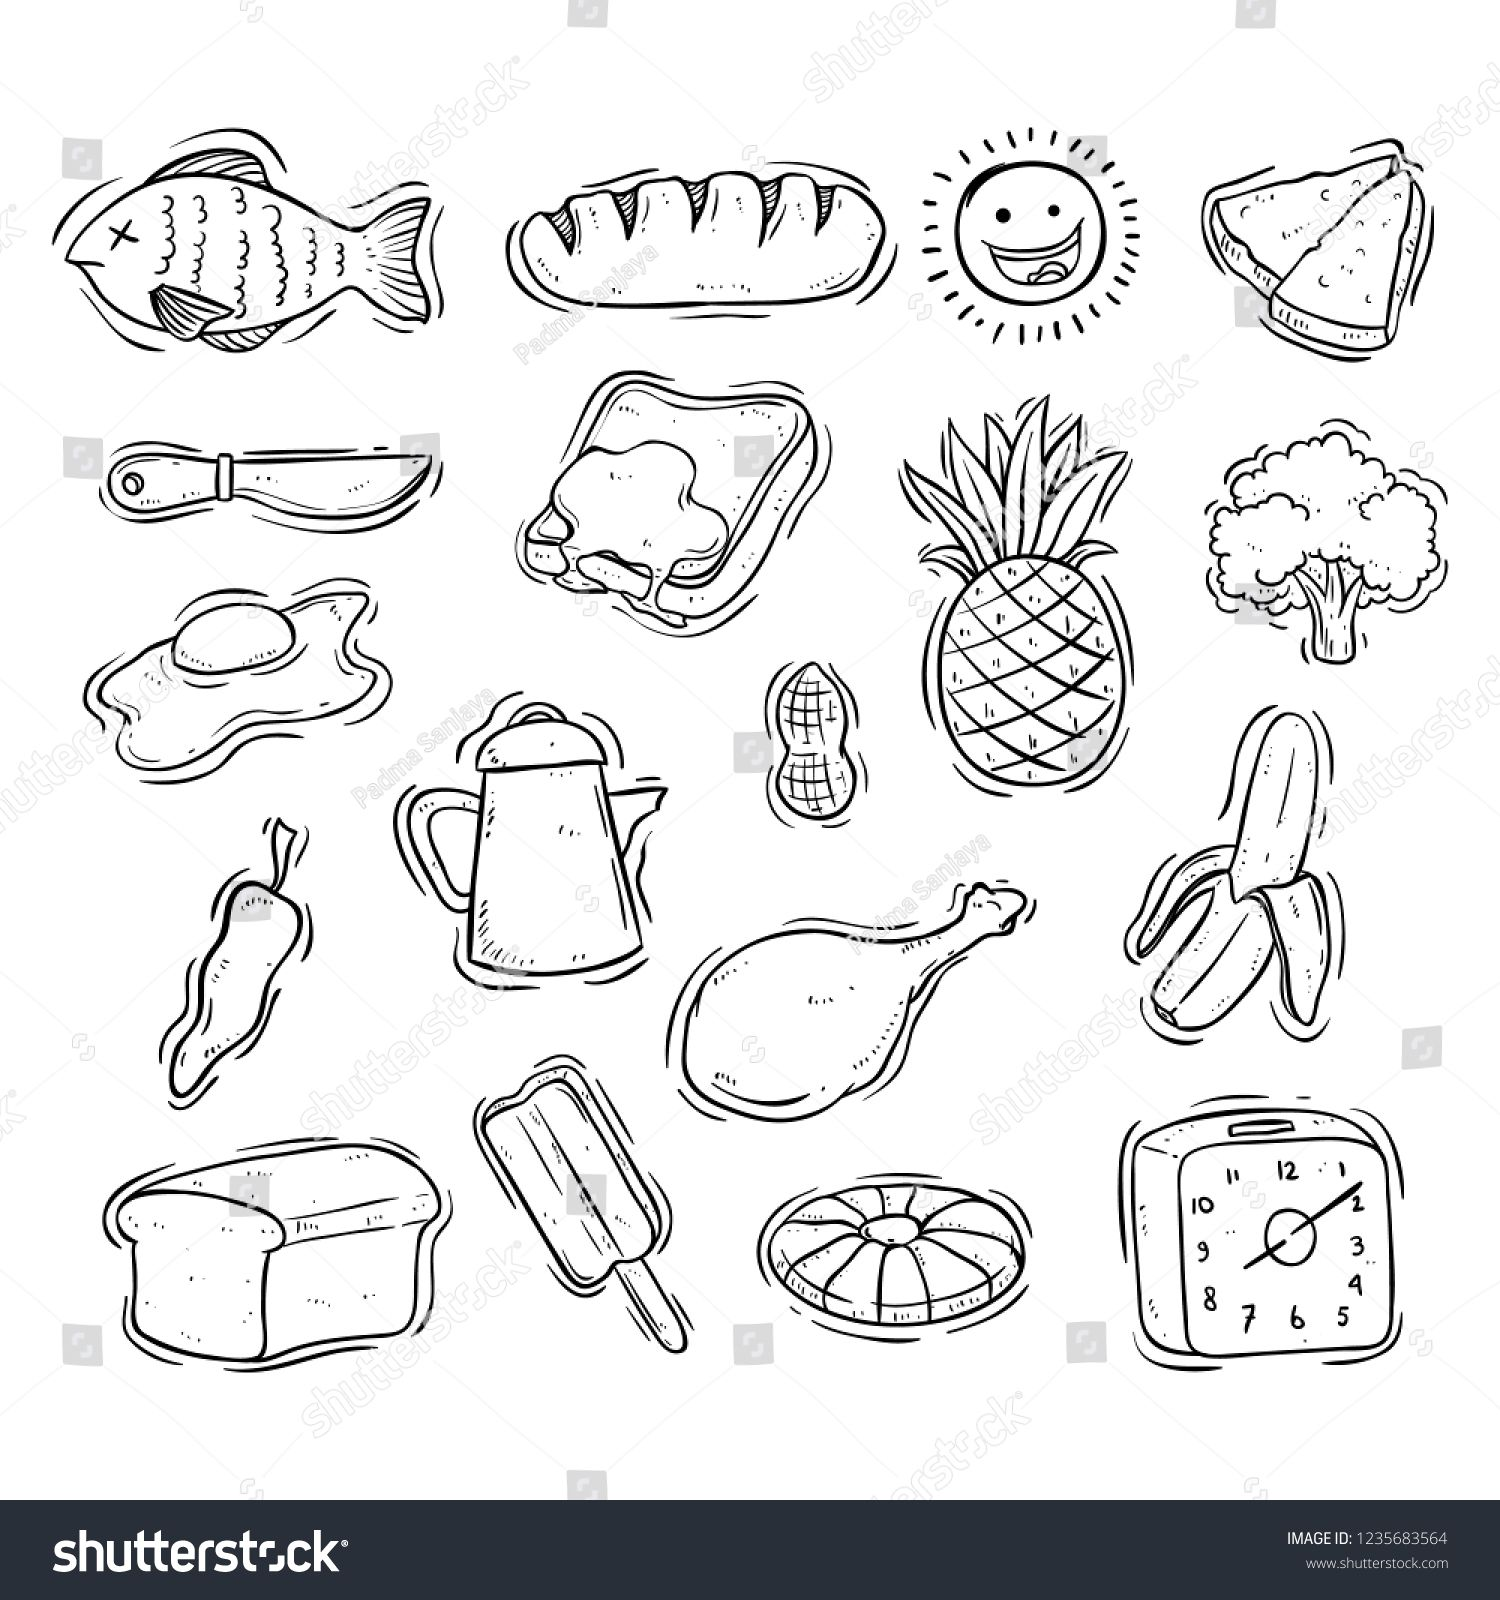 Collection Of Tasty Breakfast Food With Doodle Style On White Background Sponsored Affiliate Breakfast Food Collecti Food Doodles Yummy Breakfast Doodles